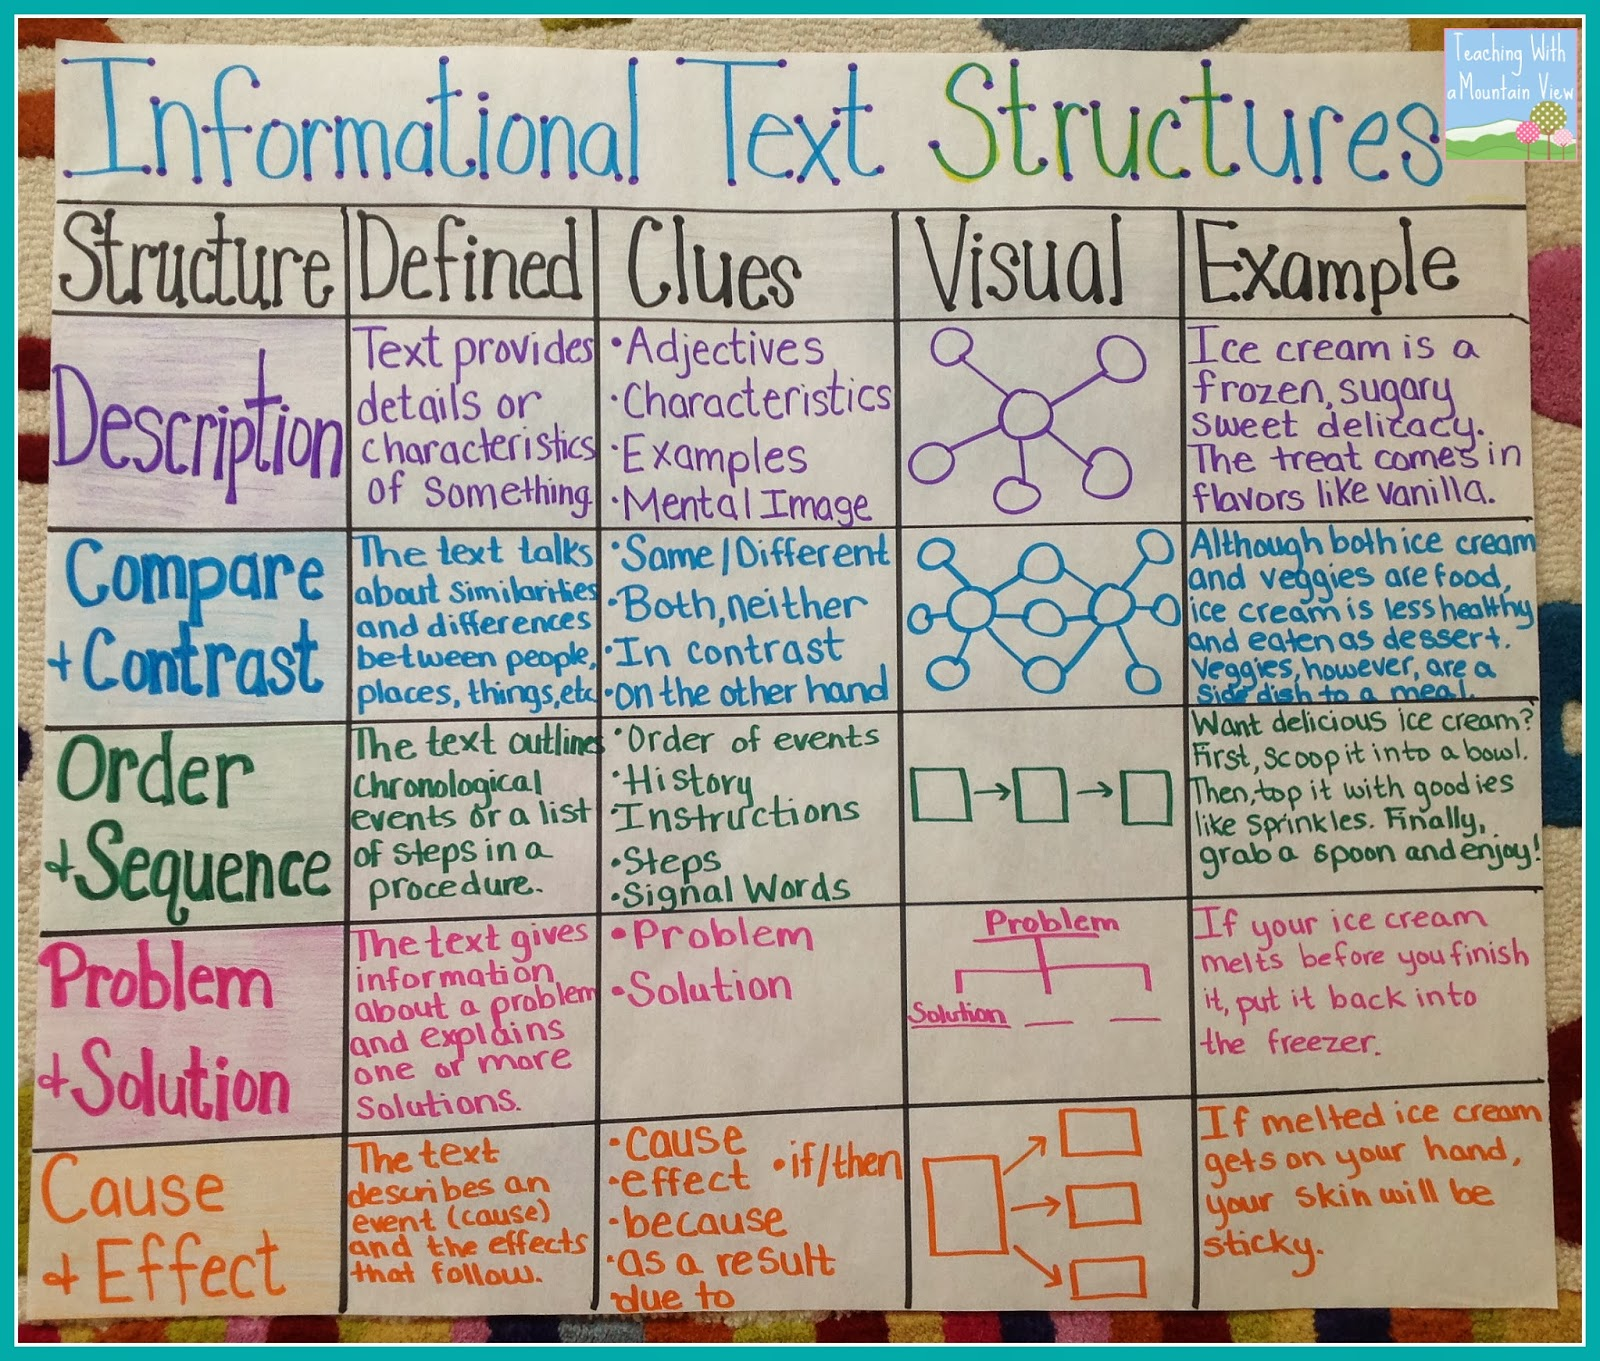 Informational Text Structures | Teaching With a Mountain View ...